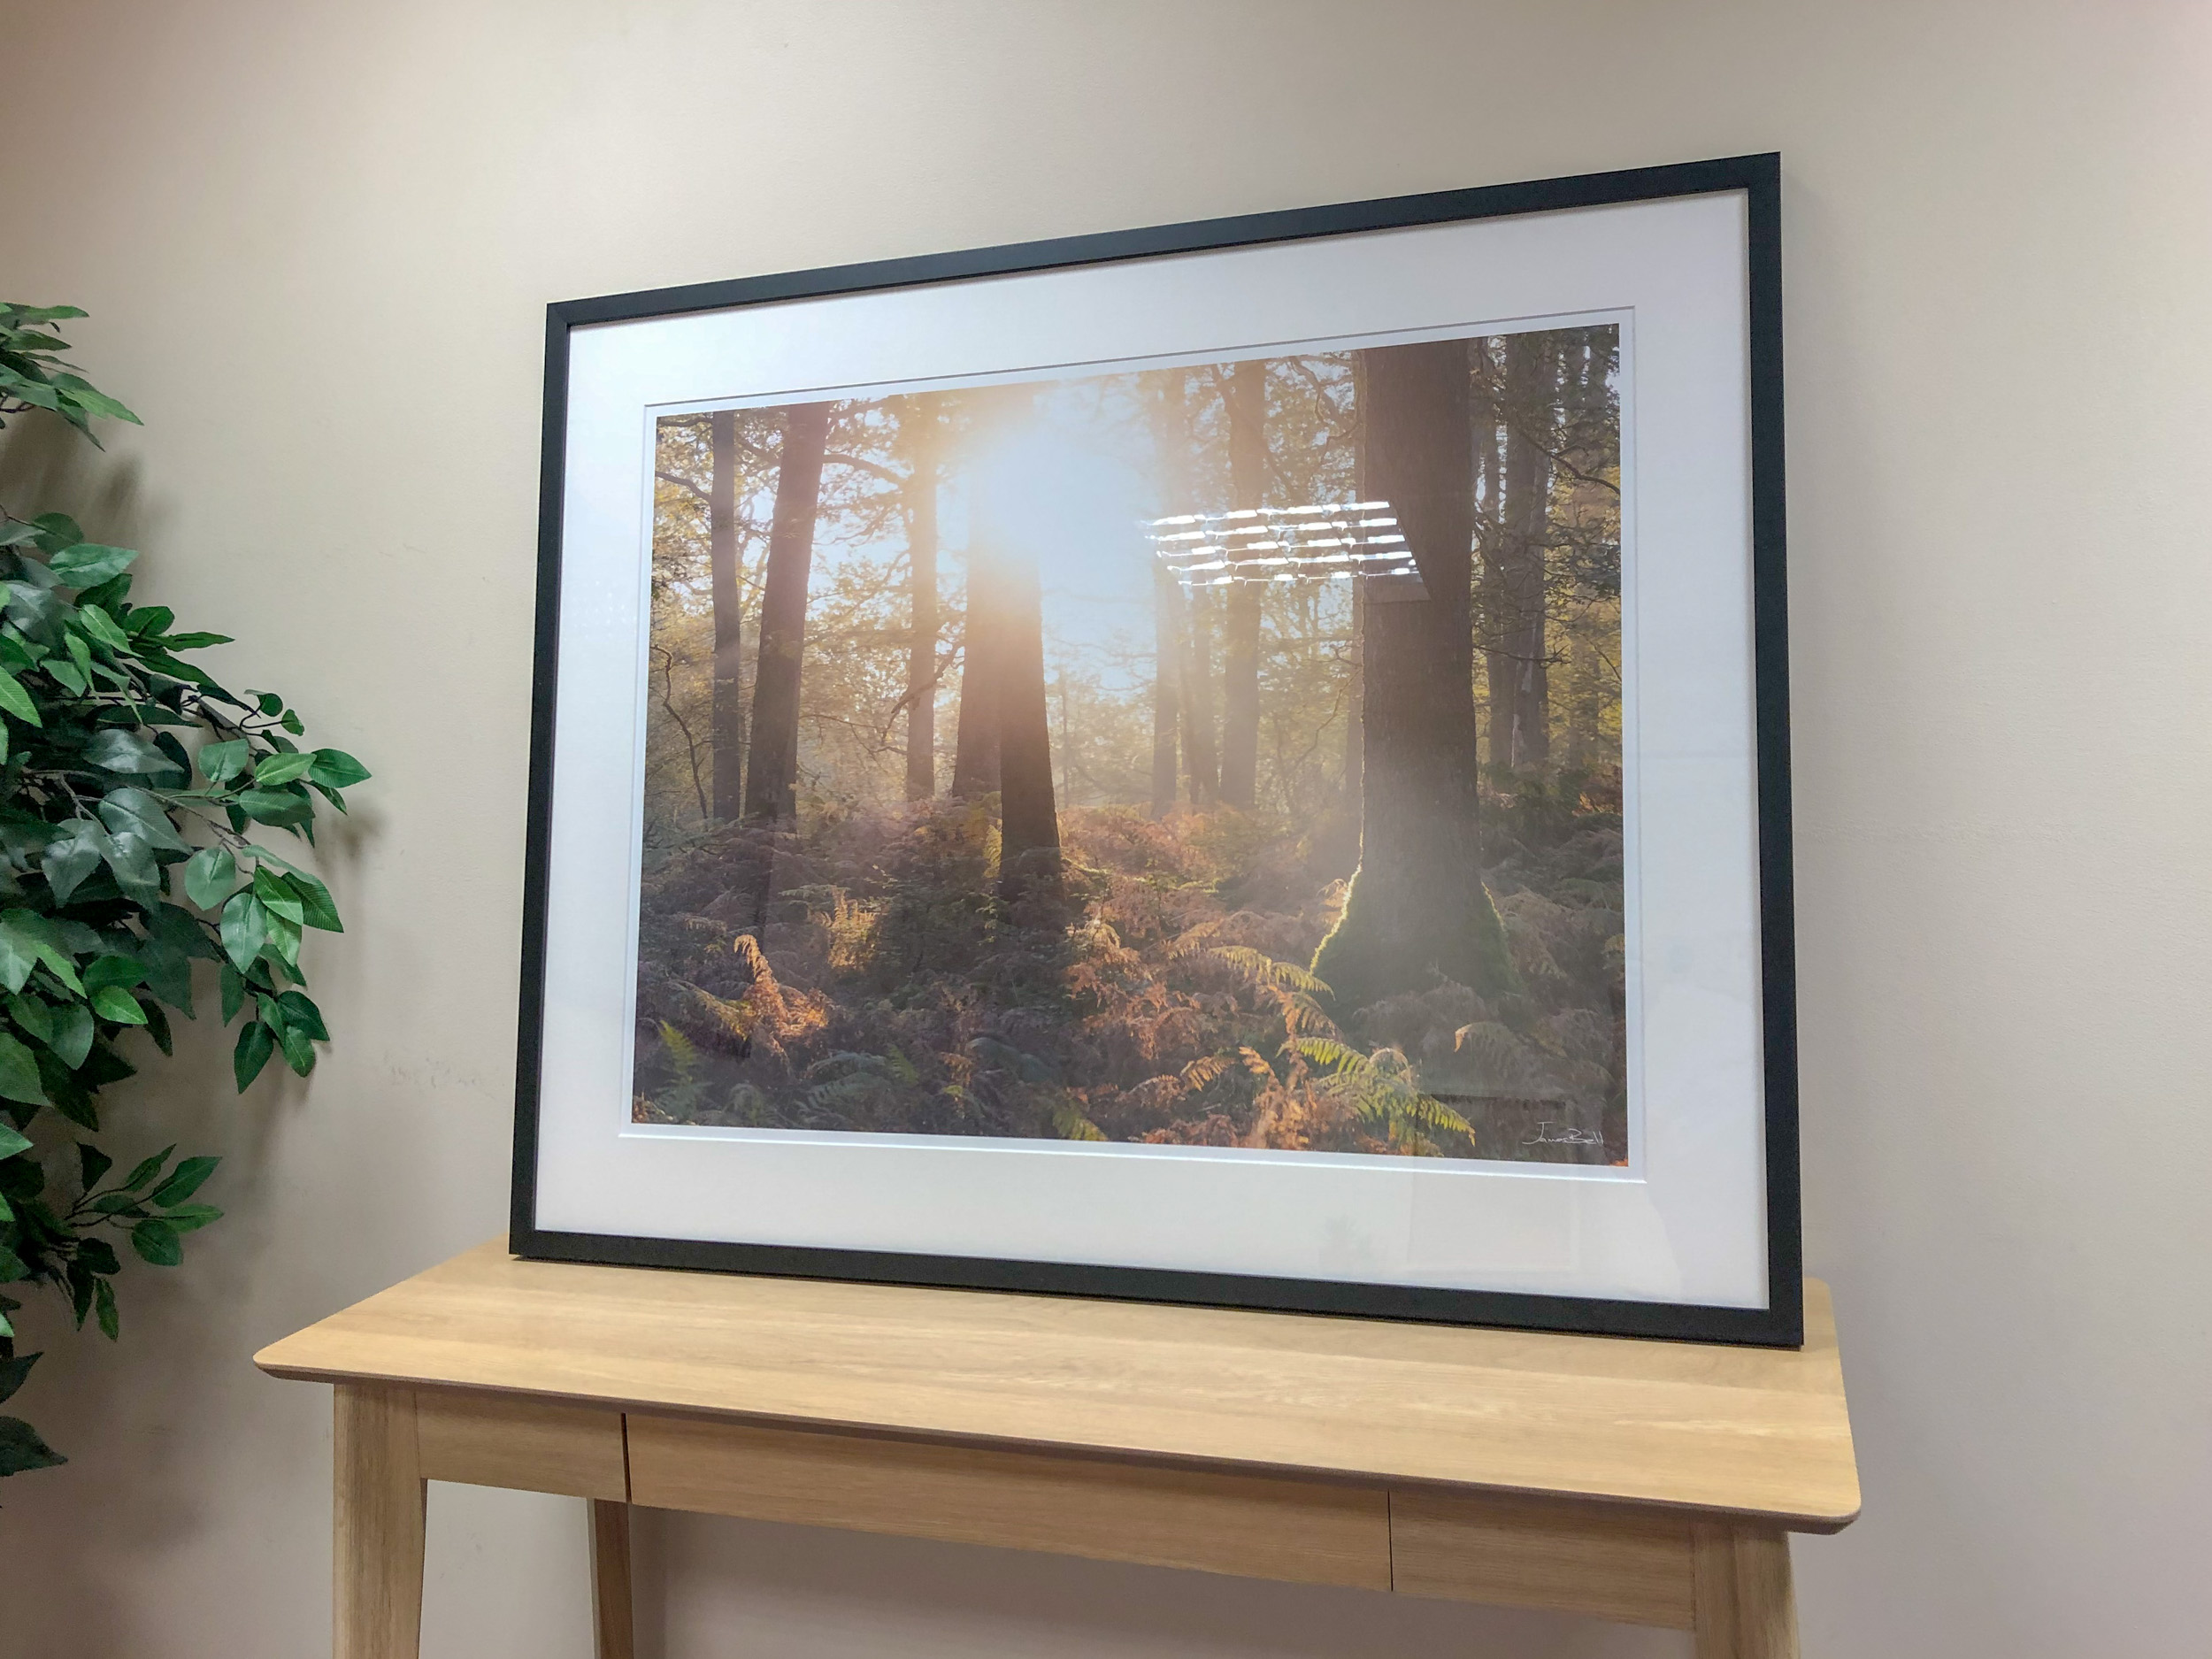 Large Framed Lake District Landscape Photographs